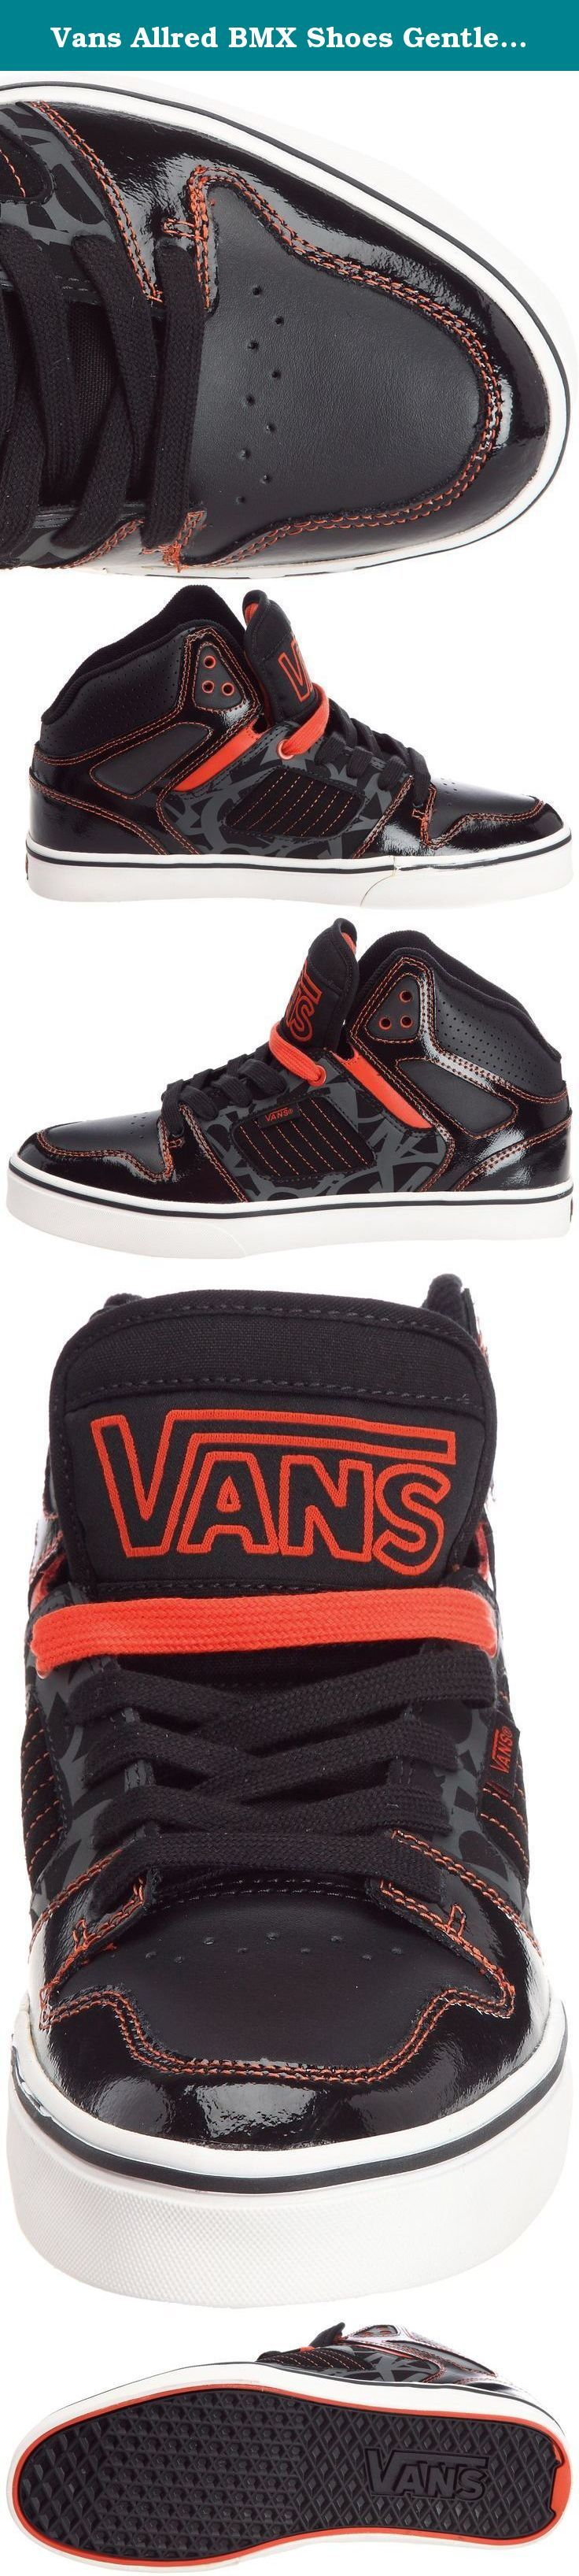 Vans Allred BMX Shoes Gentlemen black/white/raven black (Size: 47). Season: Year-round items Type/Intended use: BMX/DH Sole: Rubber, EVA Closure system: laces product specific size information: Normal Cut Fit: standard fit .